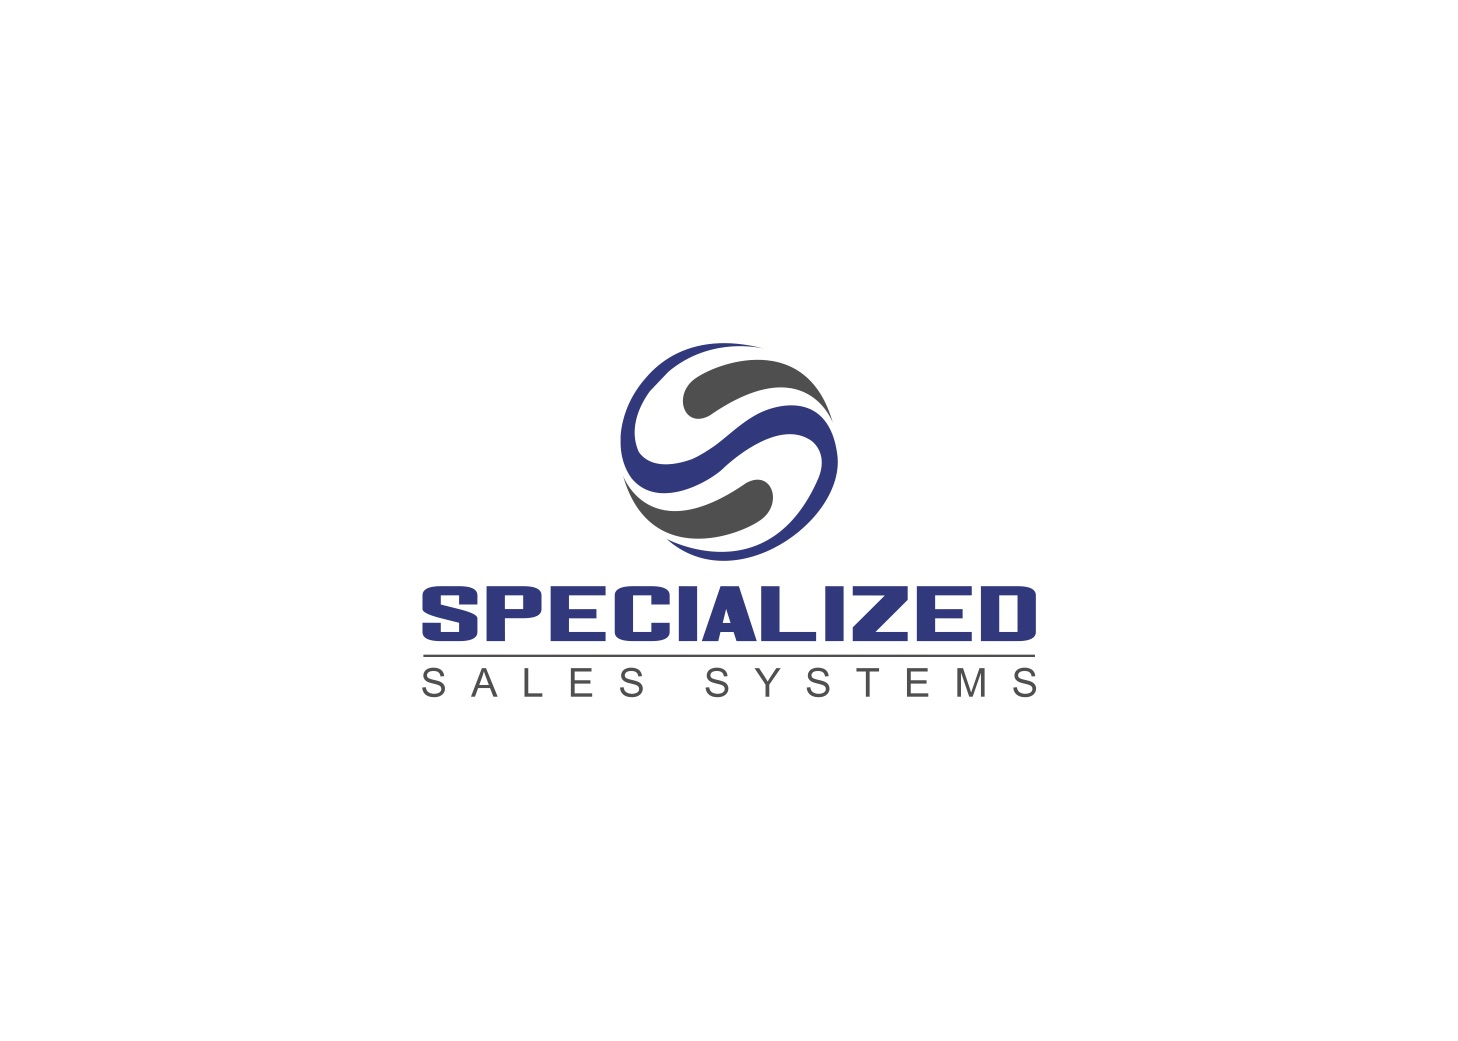 Specialized Sales Systems Logo